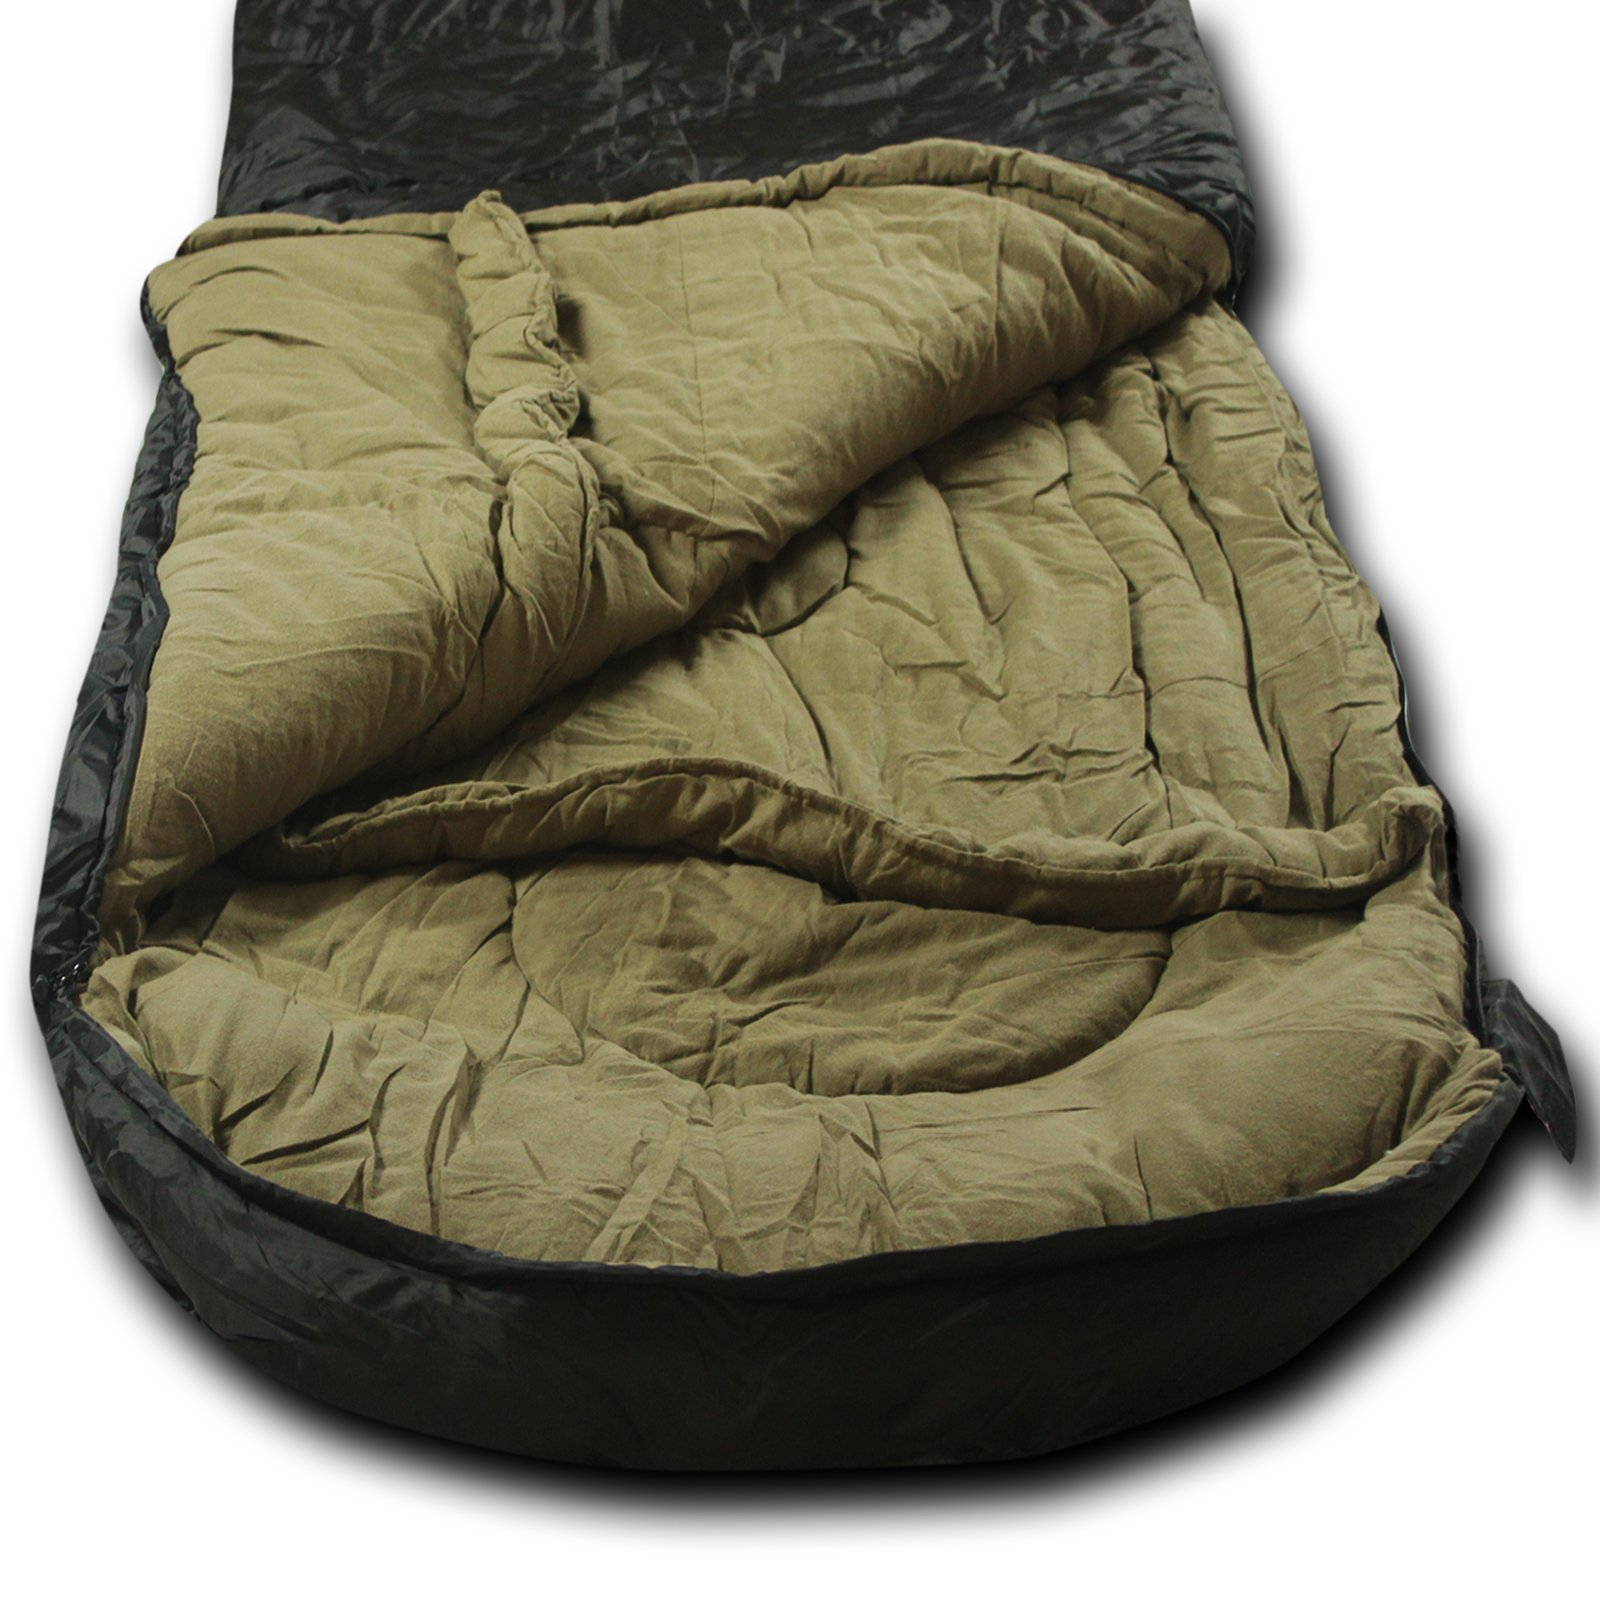 Wolftraders LoNewolf +0 Degree Premium Comfort Ripstop Oversized Square Sleeping Bag, Black Tan by Wolftraders Inc